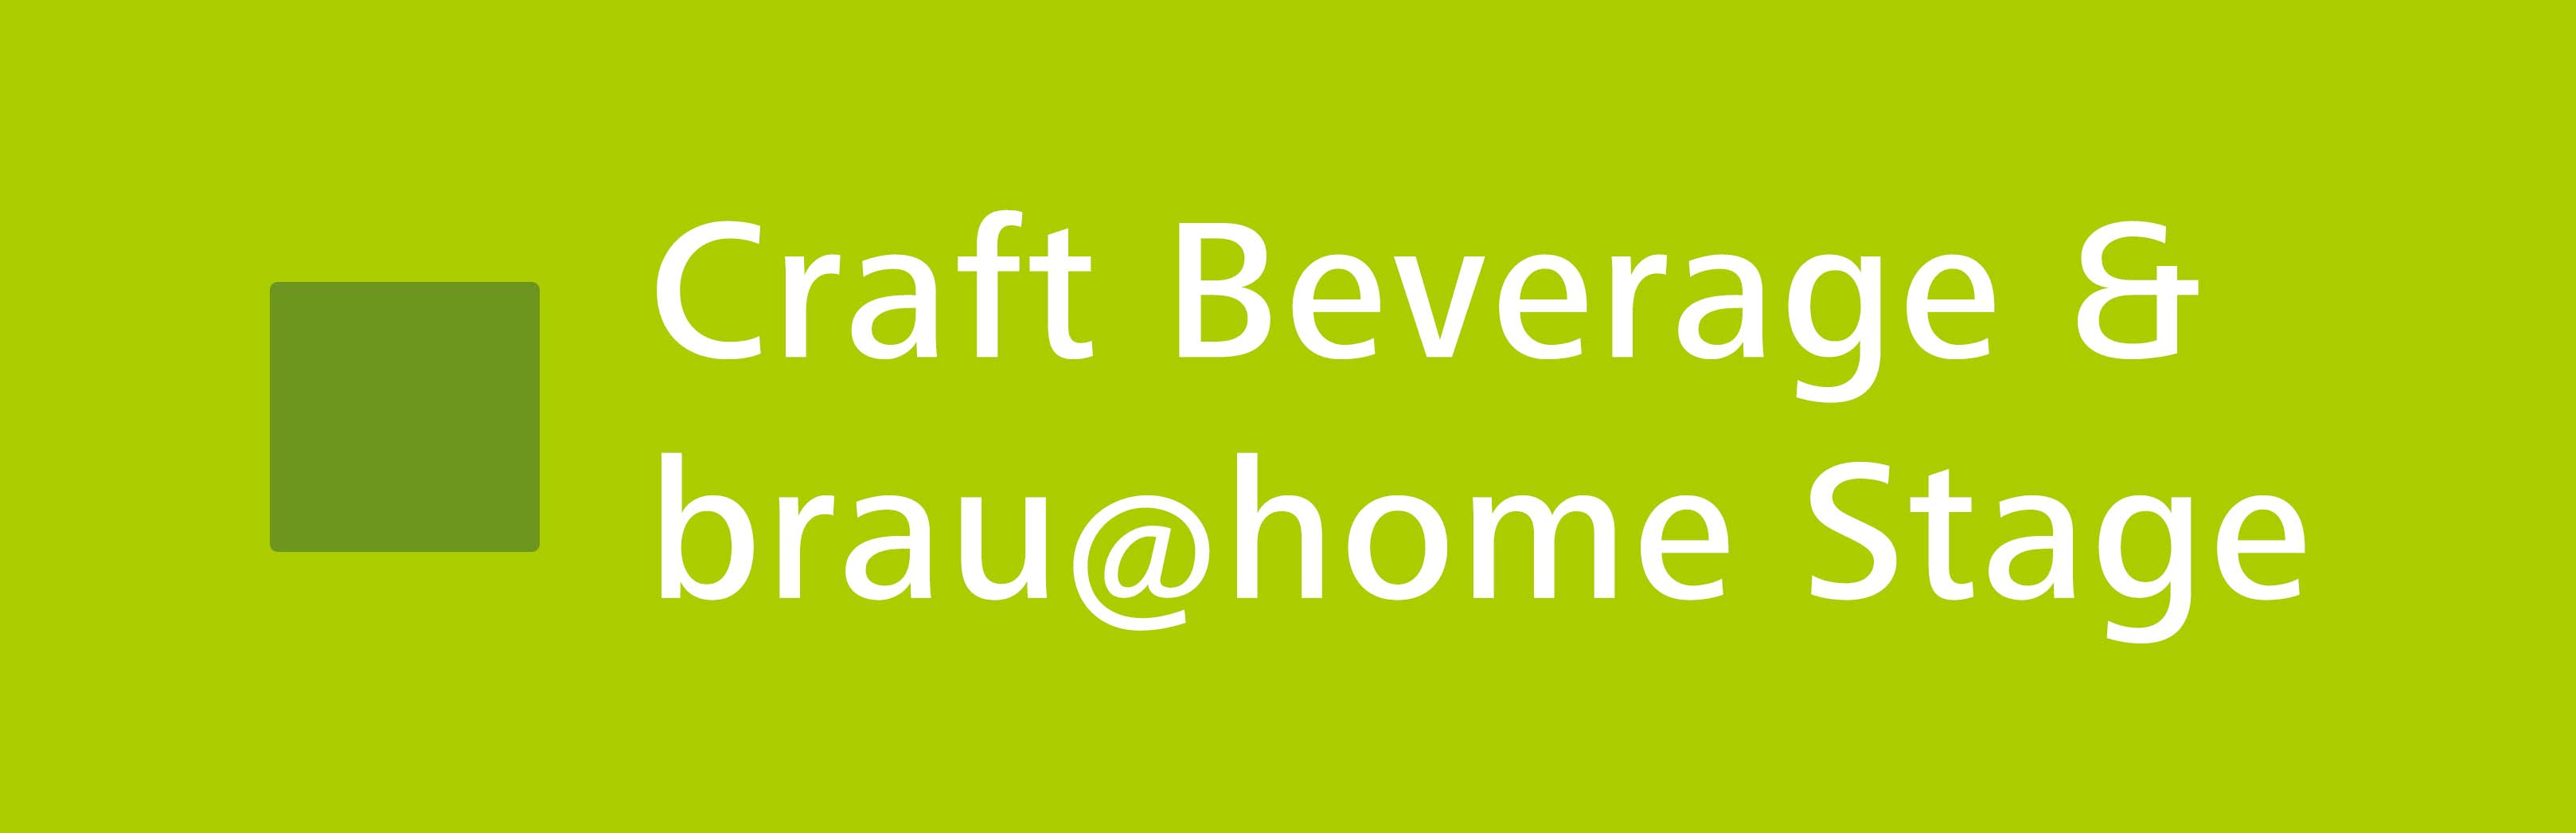 myBeviale.com Header Craft Beverage & brau@home Stage